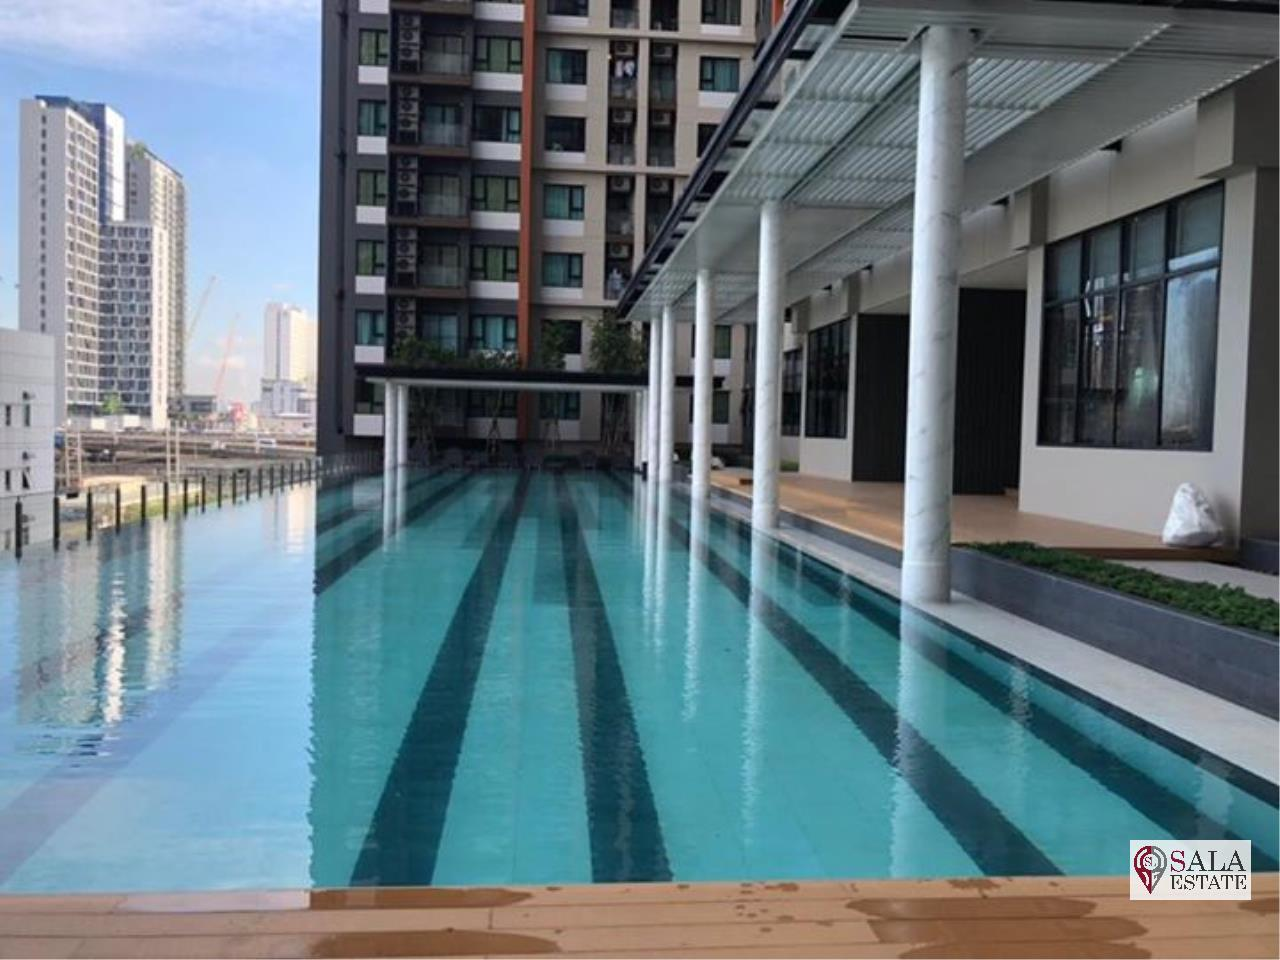 SALA ESTATE Agency's LIFE ASOKE – MRT PHETCHABURI, 1 BEDROOM 1 BATHROOM, FULLY FURNISHED, CITY VIEW 8